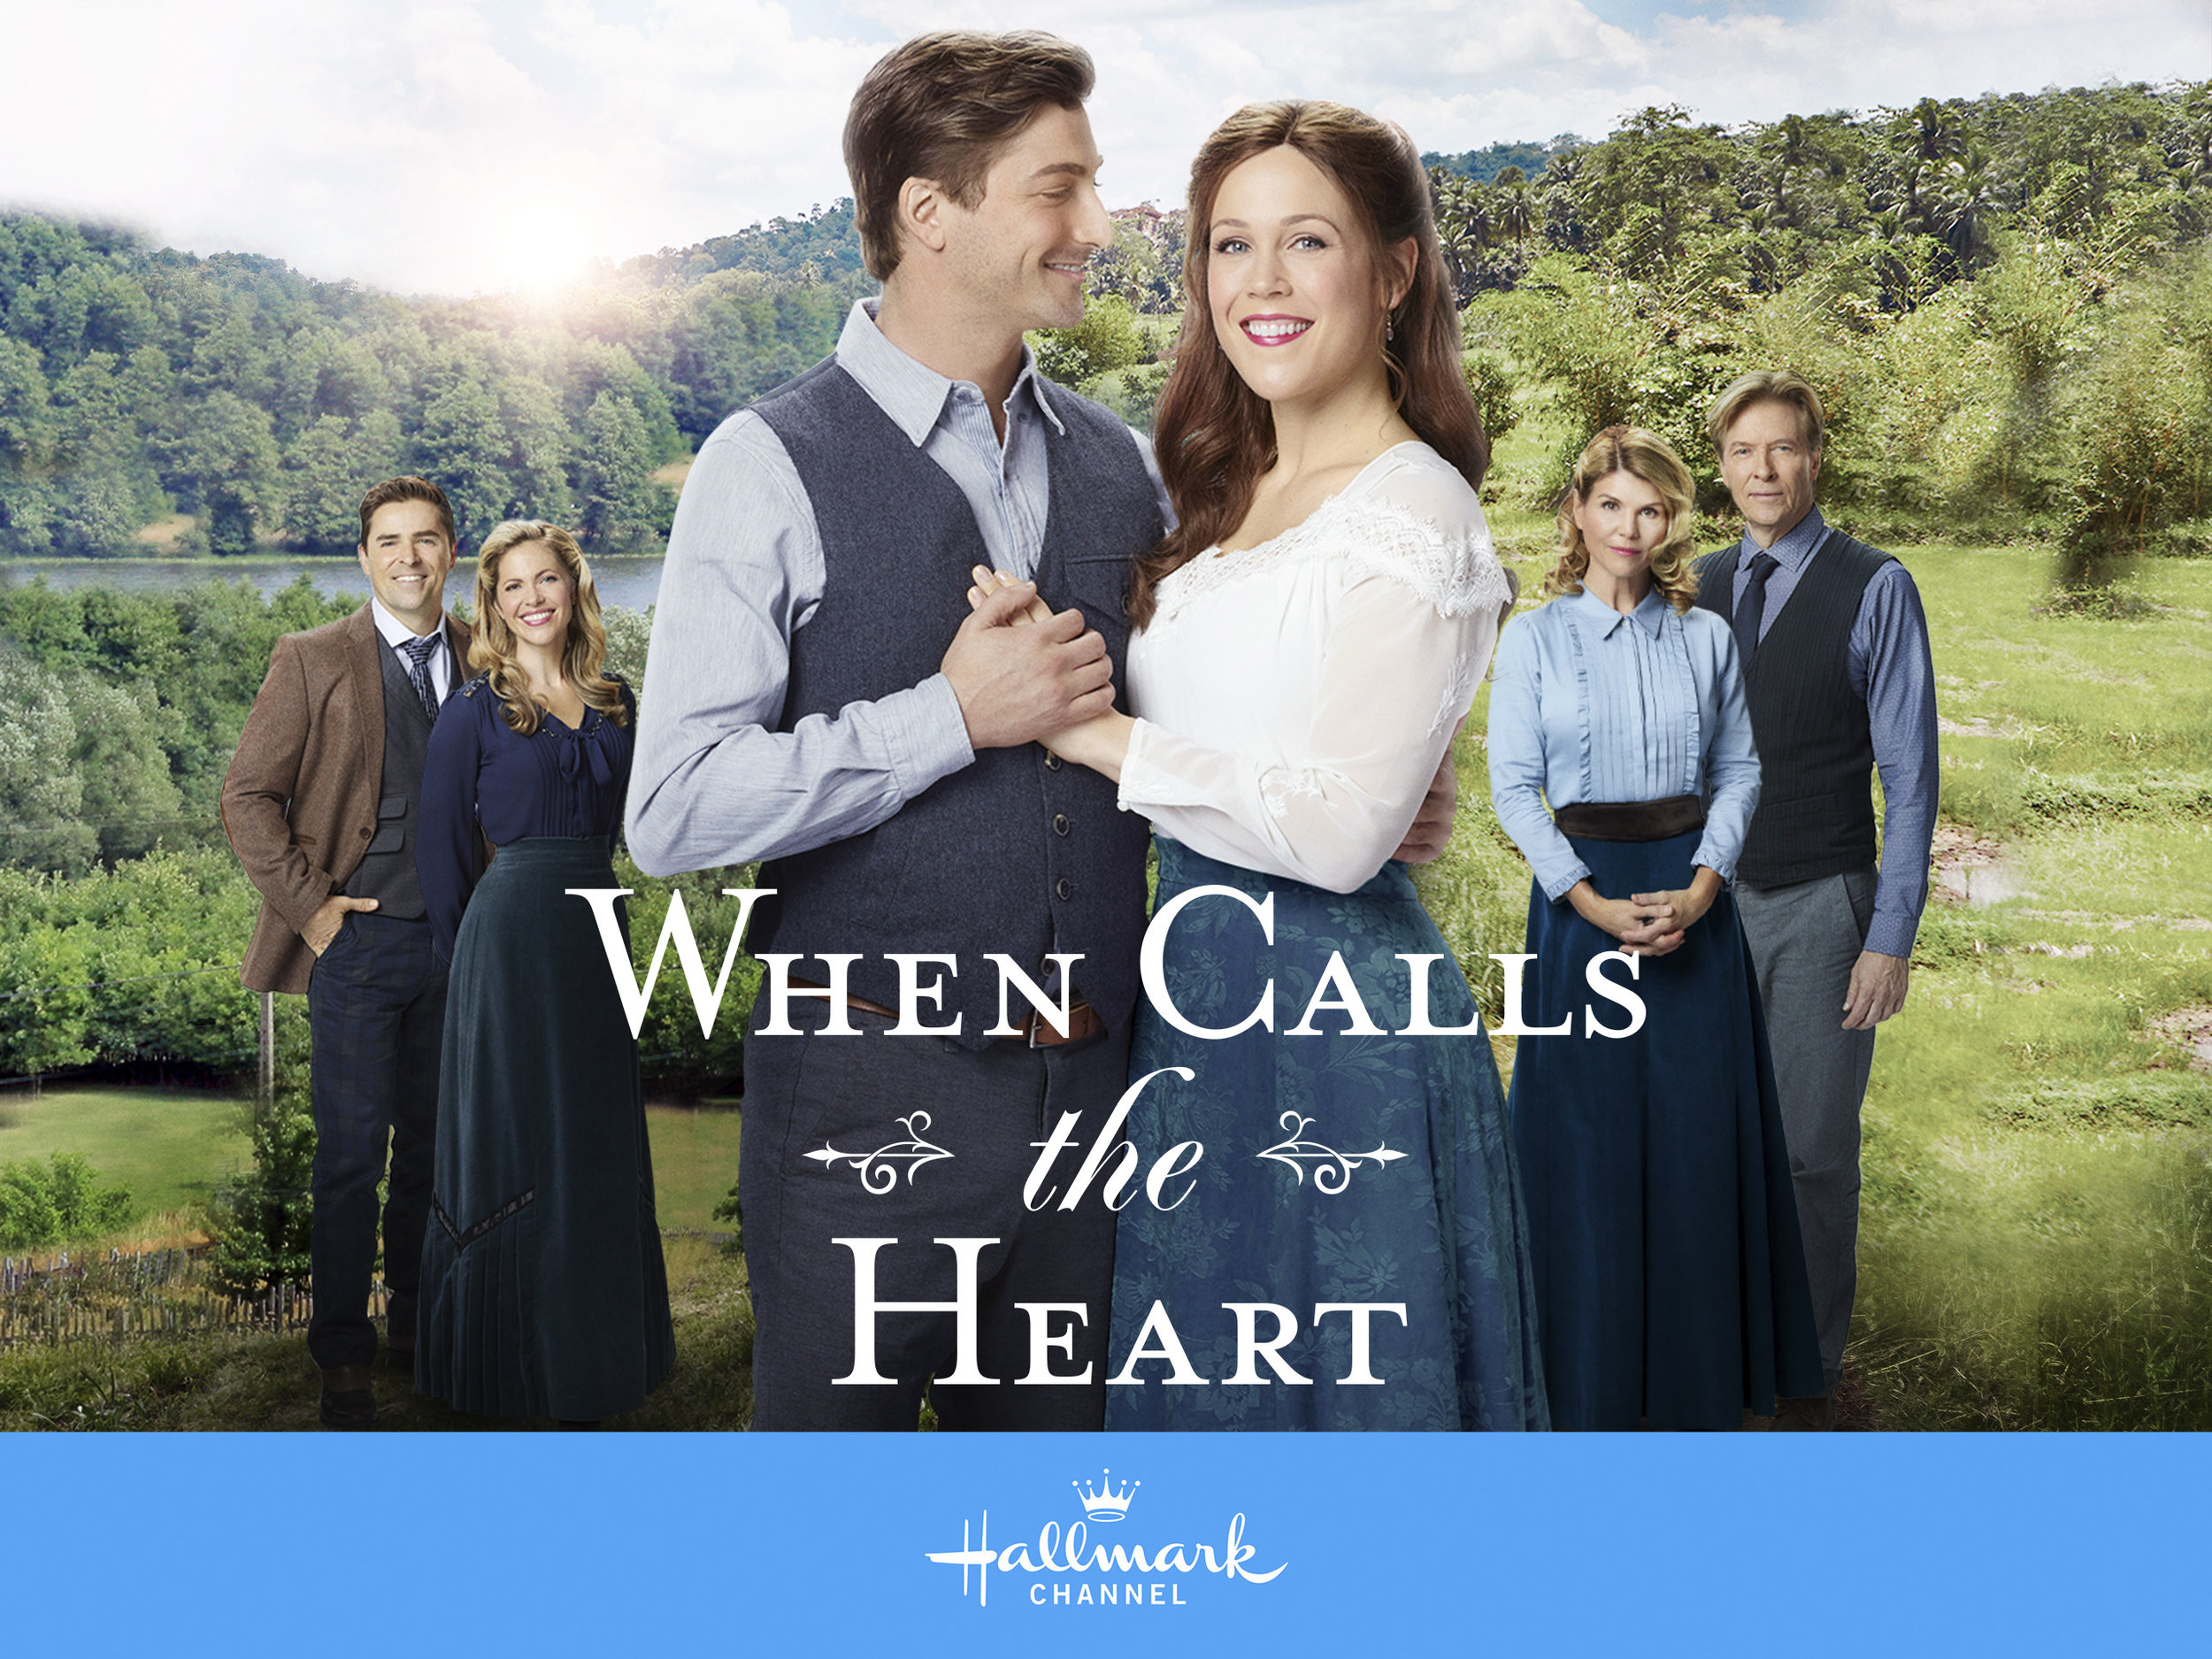 When Calls The Heart - PGHallmark Channel, available on Netflix.